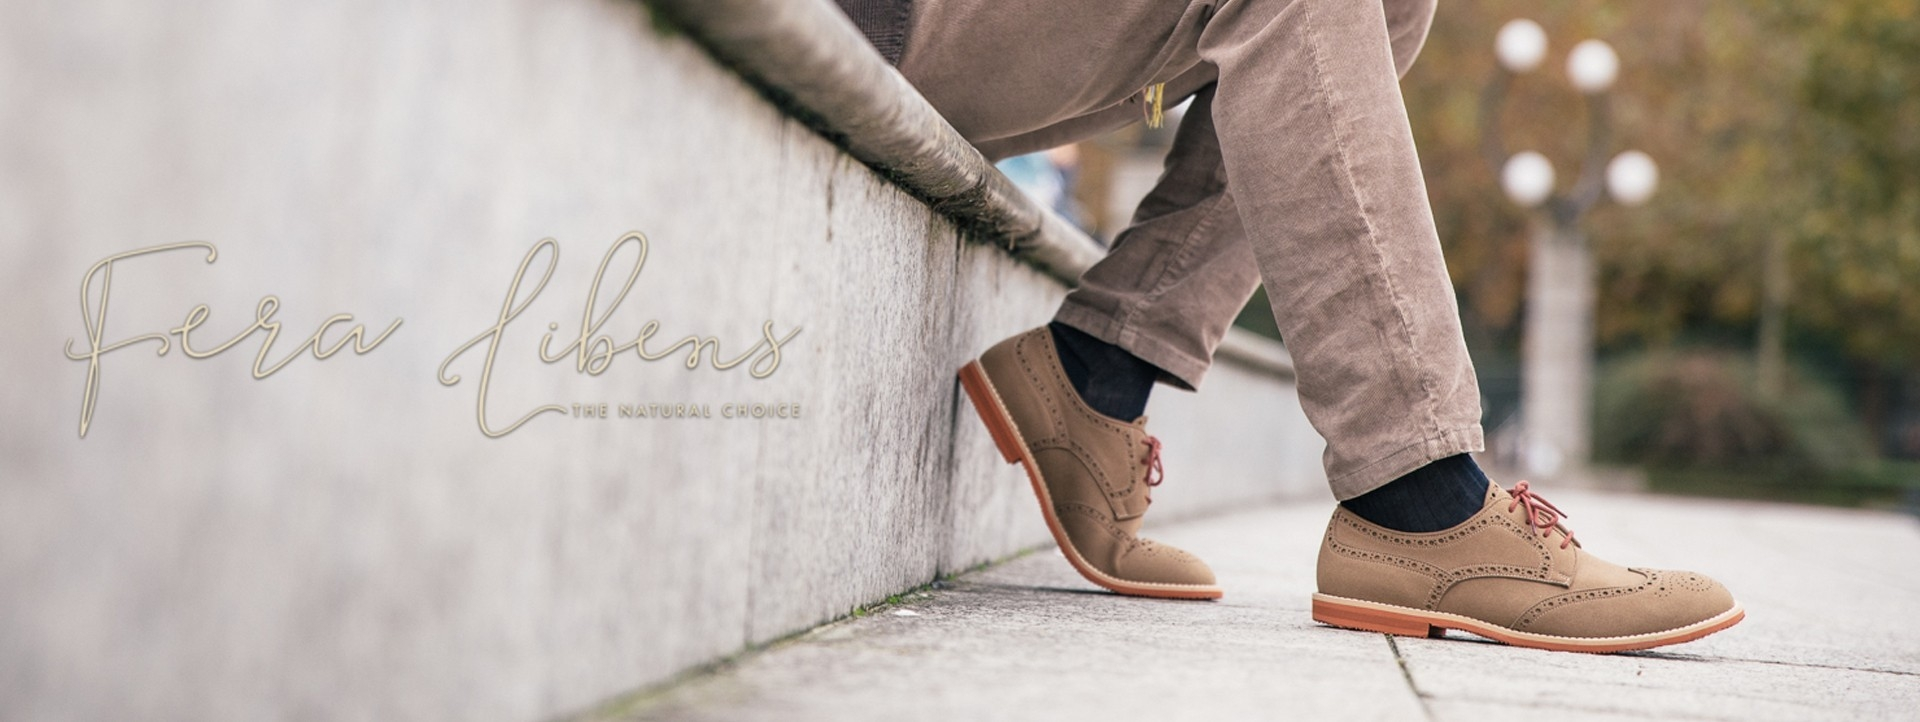 FeraLibens - VeganShoes.it